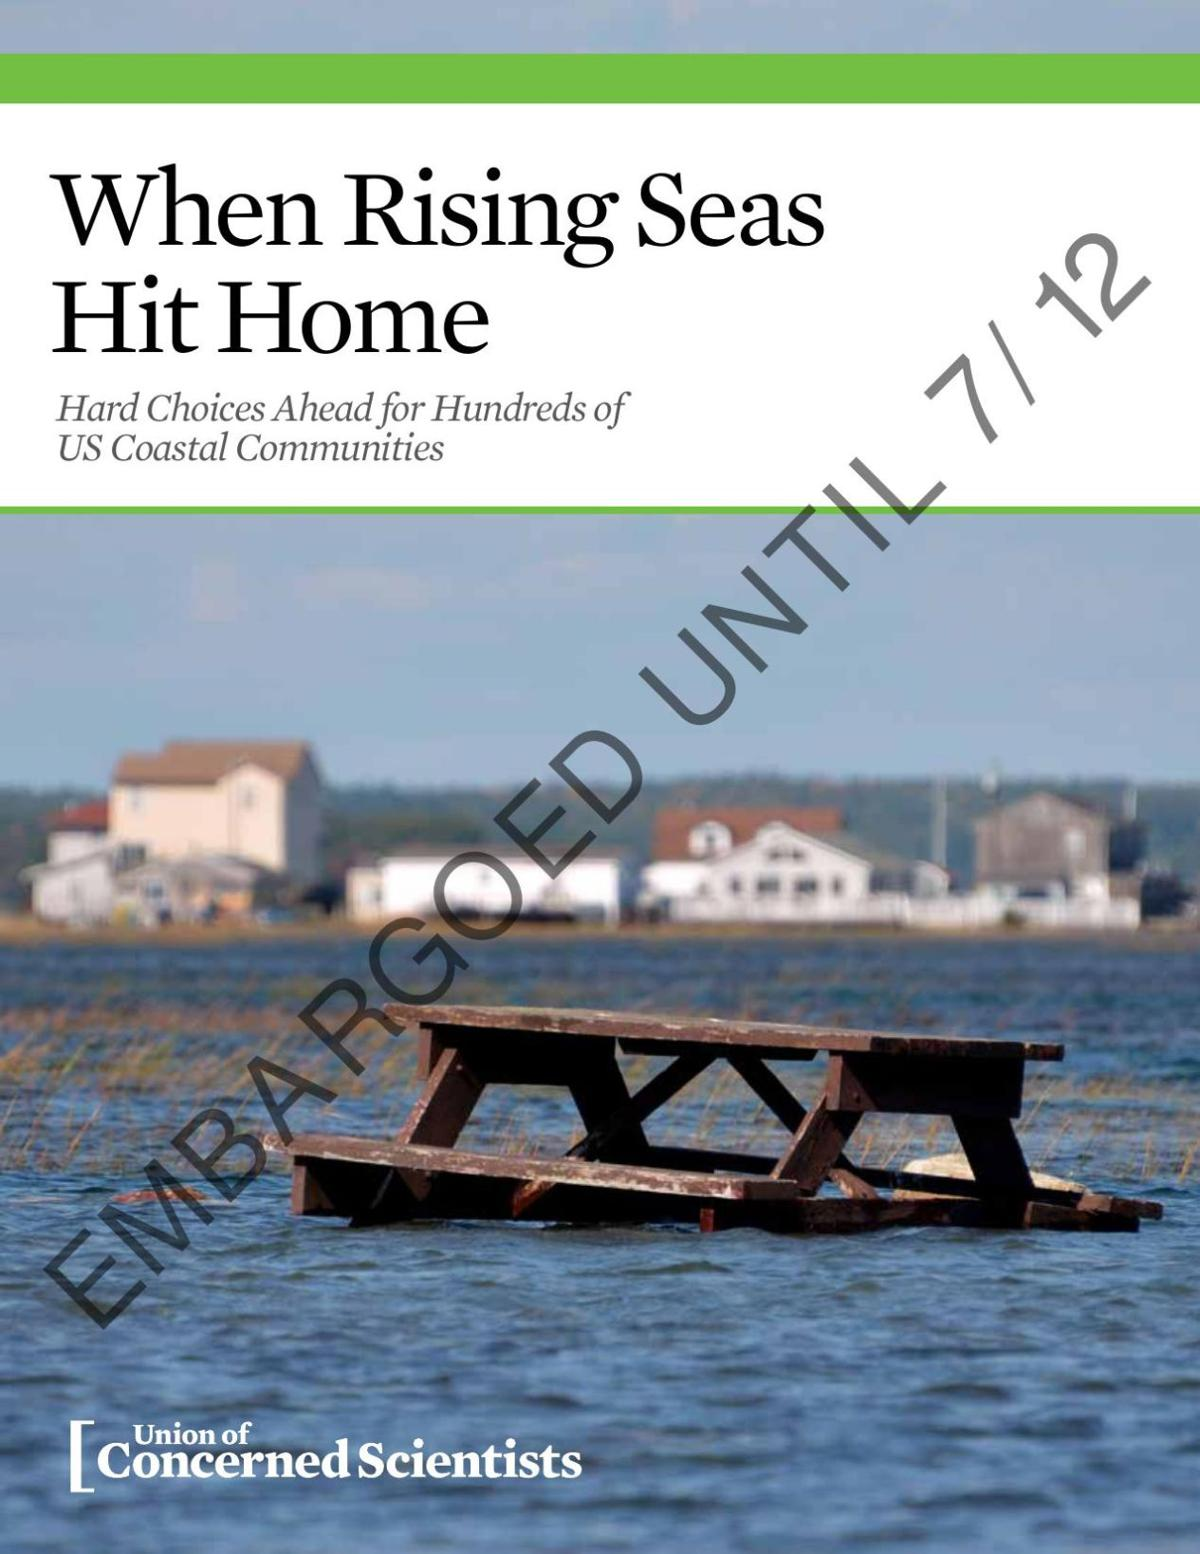 When Rising Seas High Home - Union of Concerned Scientists.pdf (14117.32 KiB)